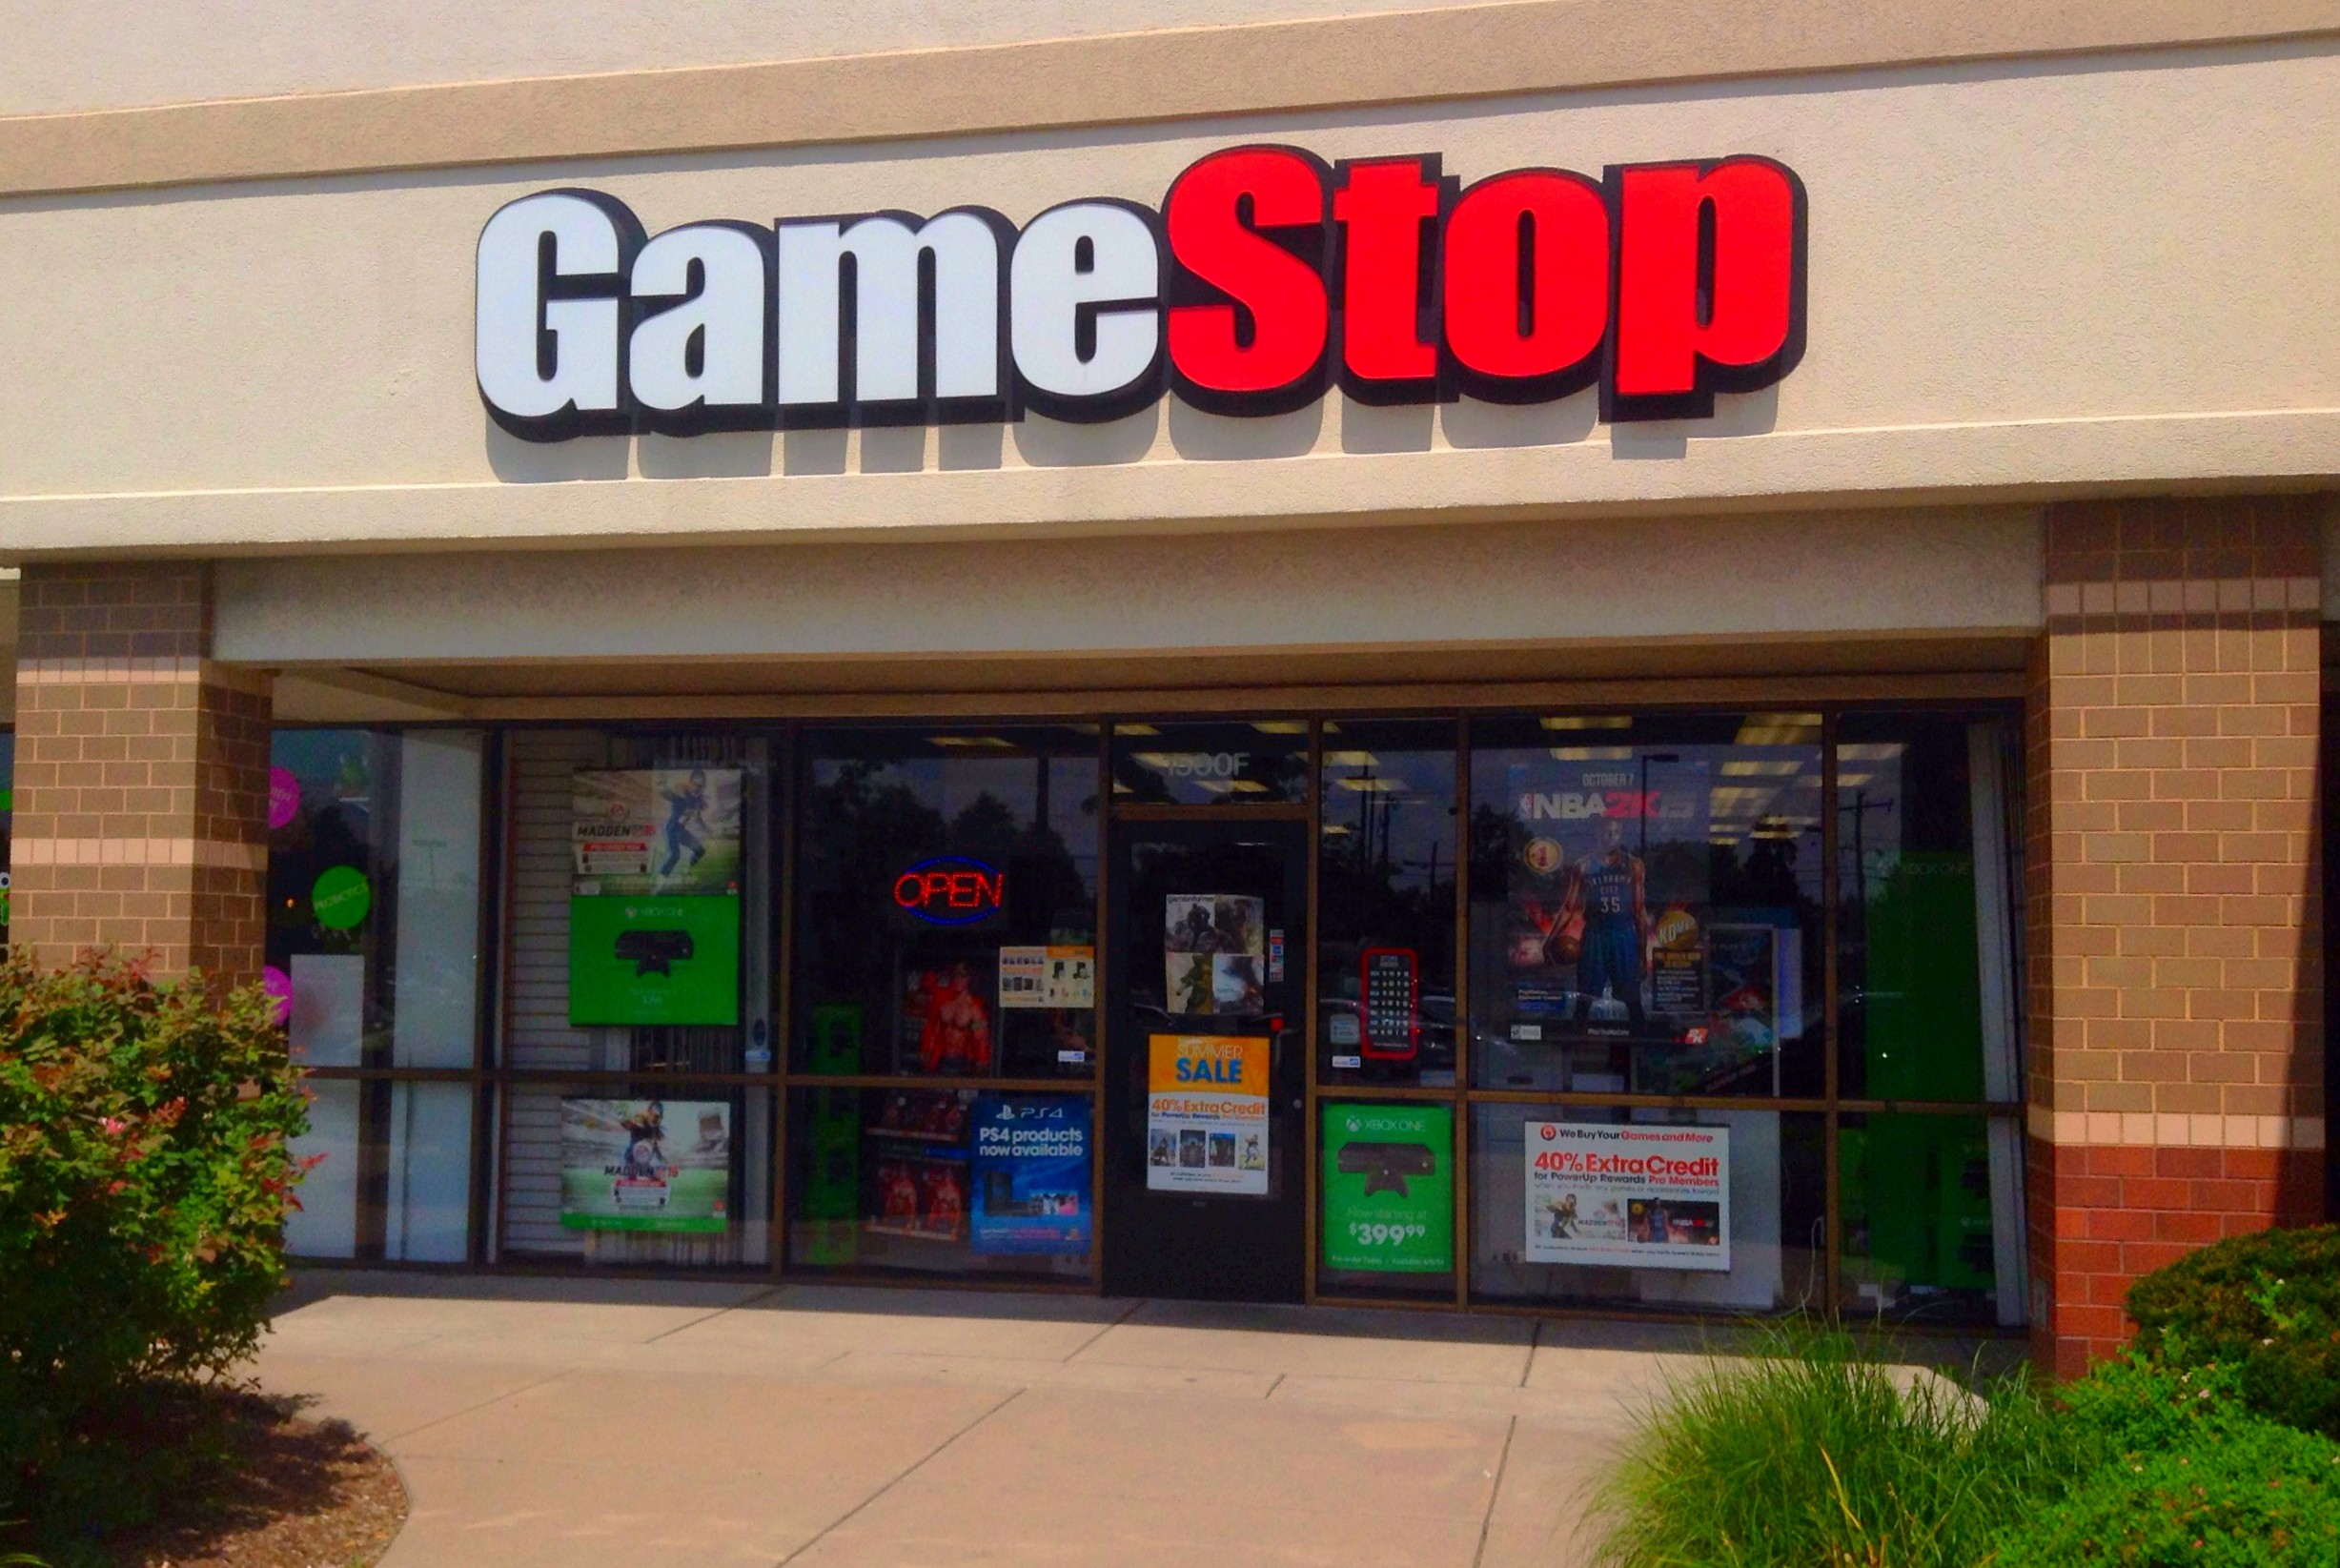 A picture of a GameStop store